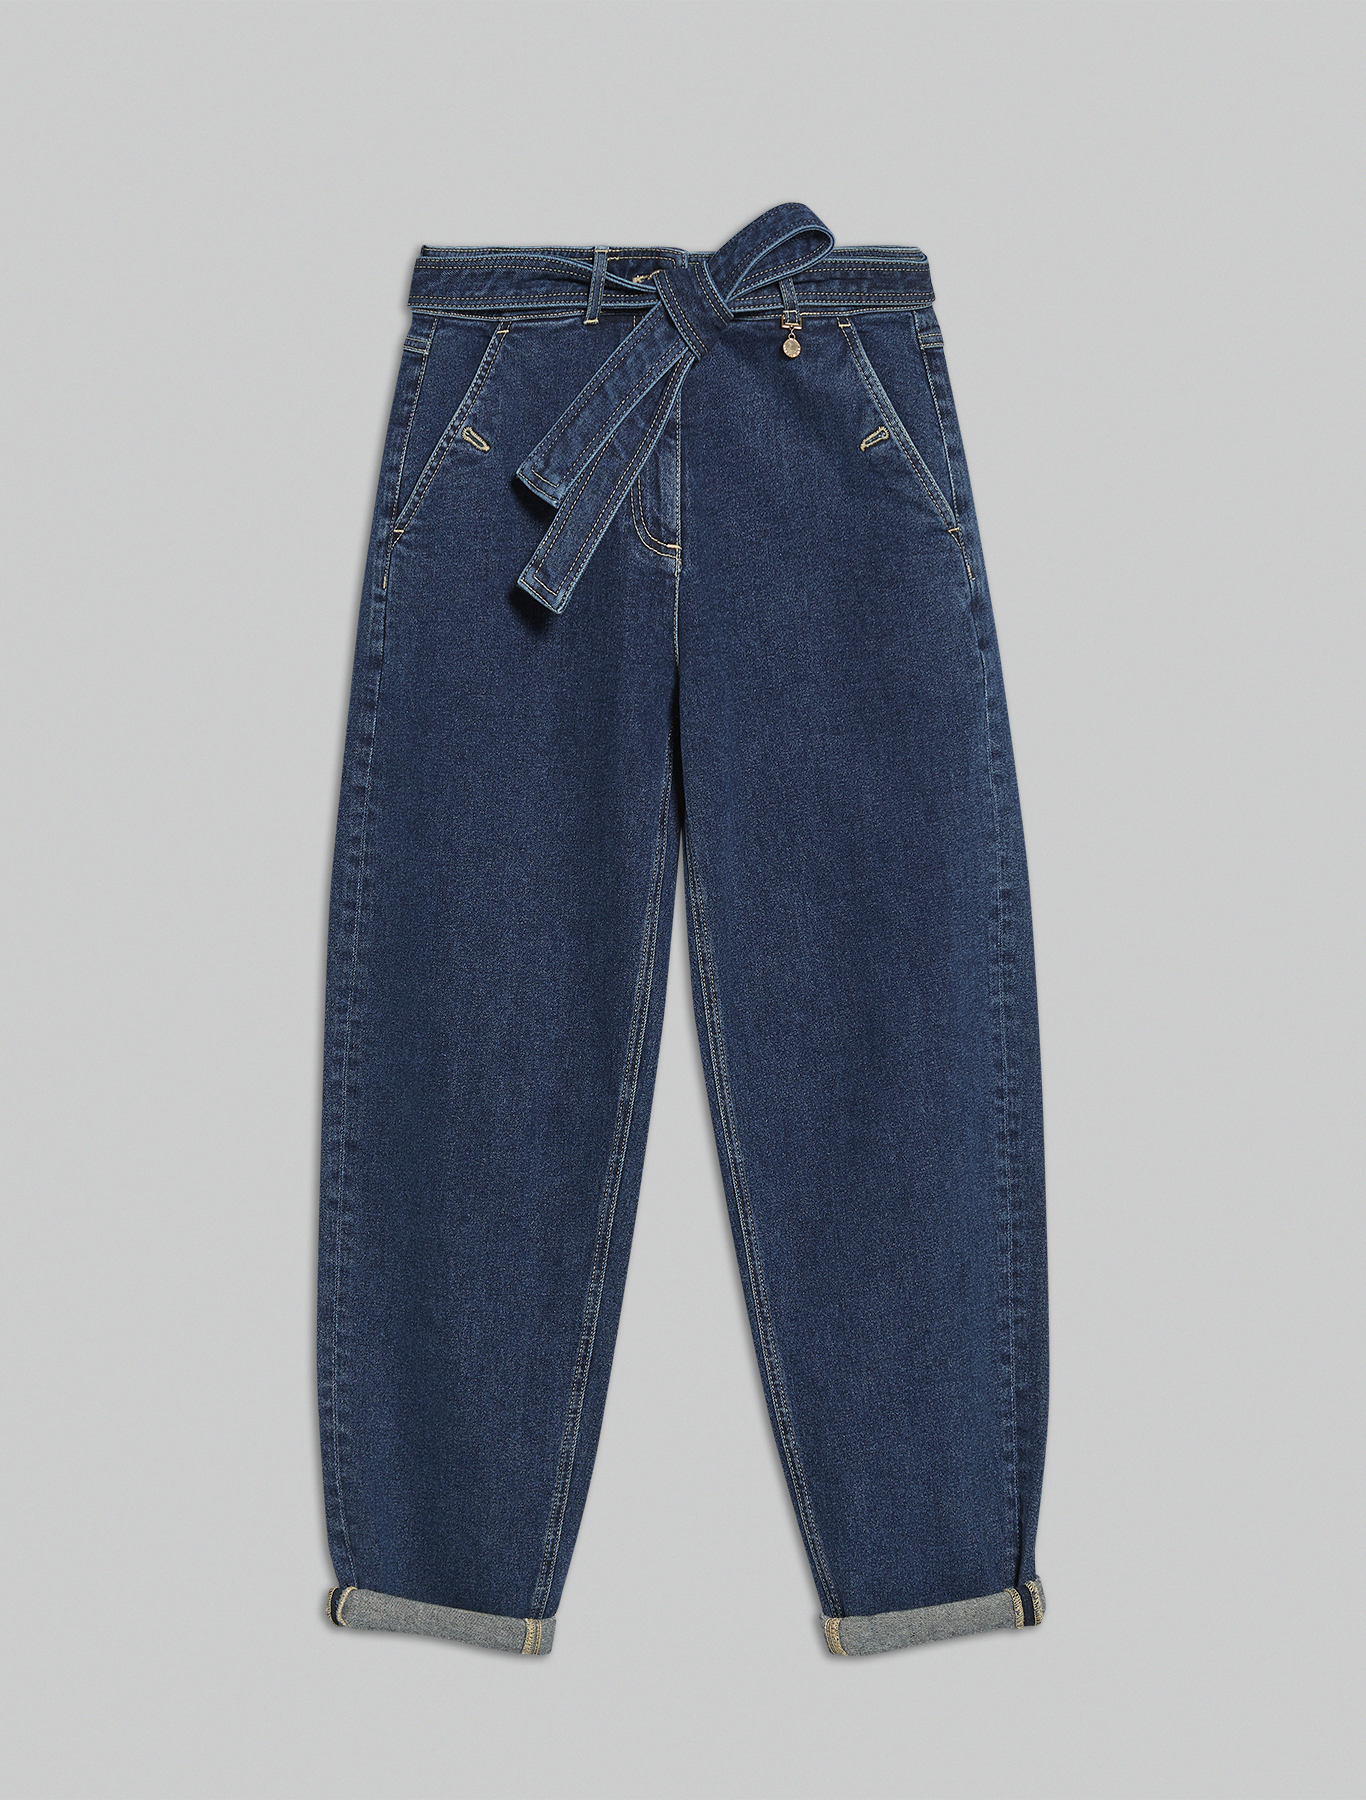 Barrel-leg jeans - midnight blue - pennyblack